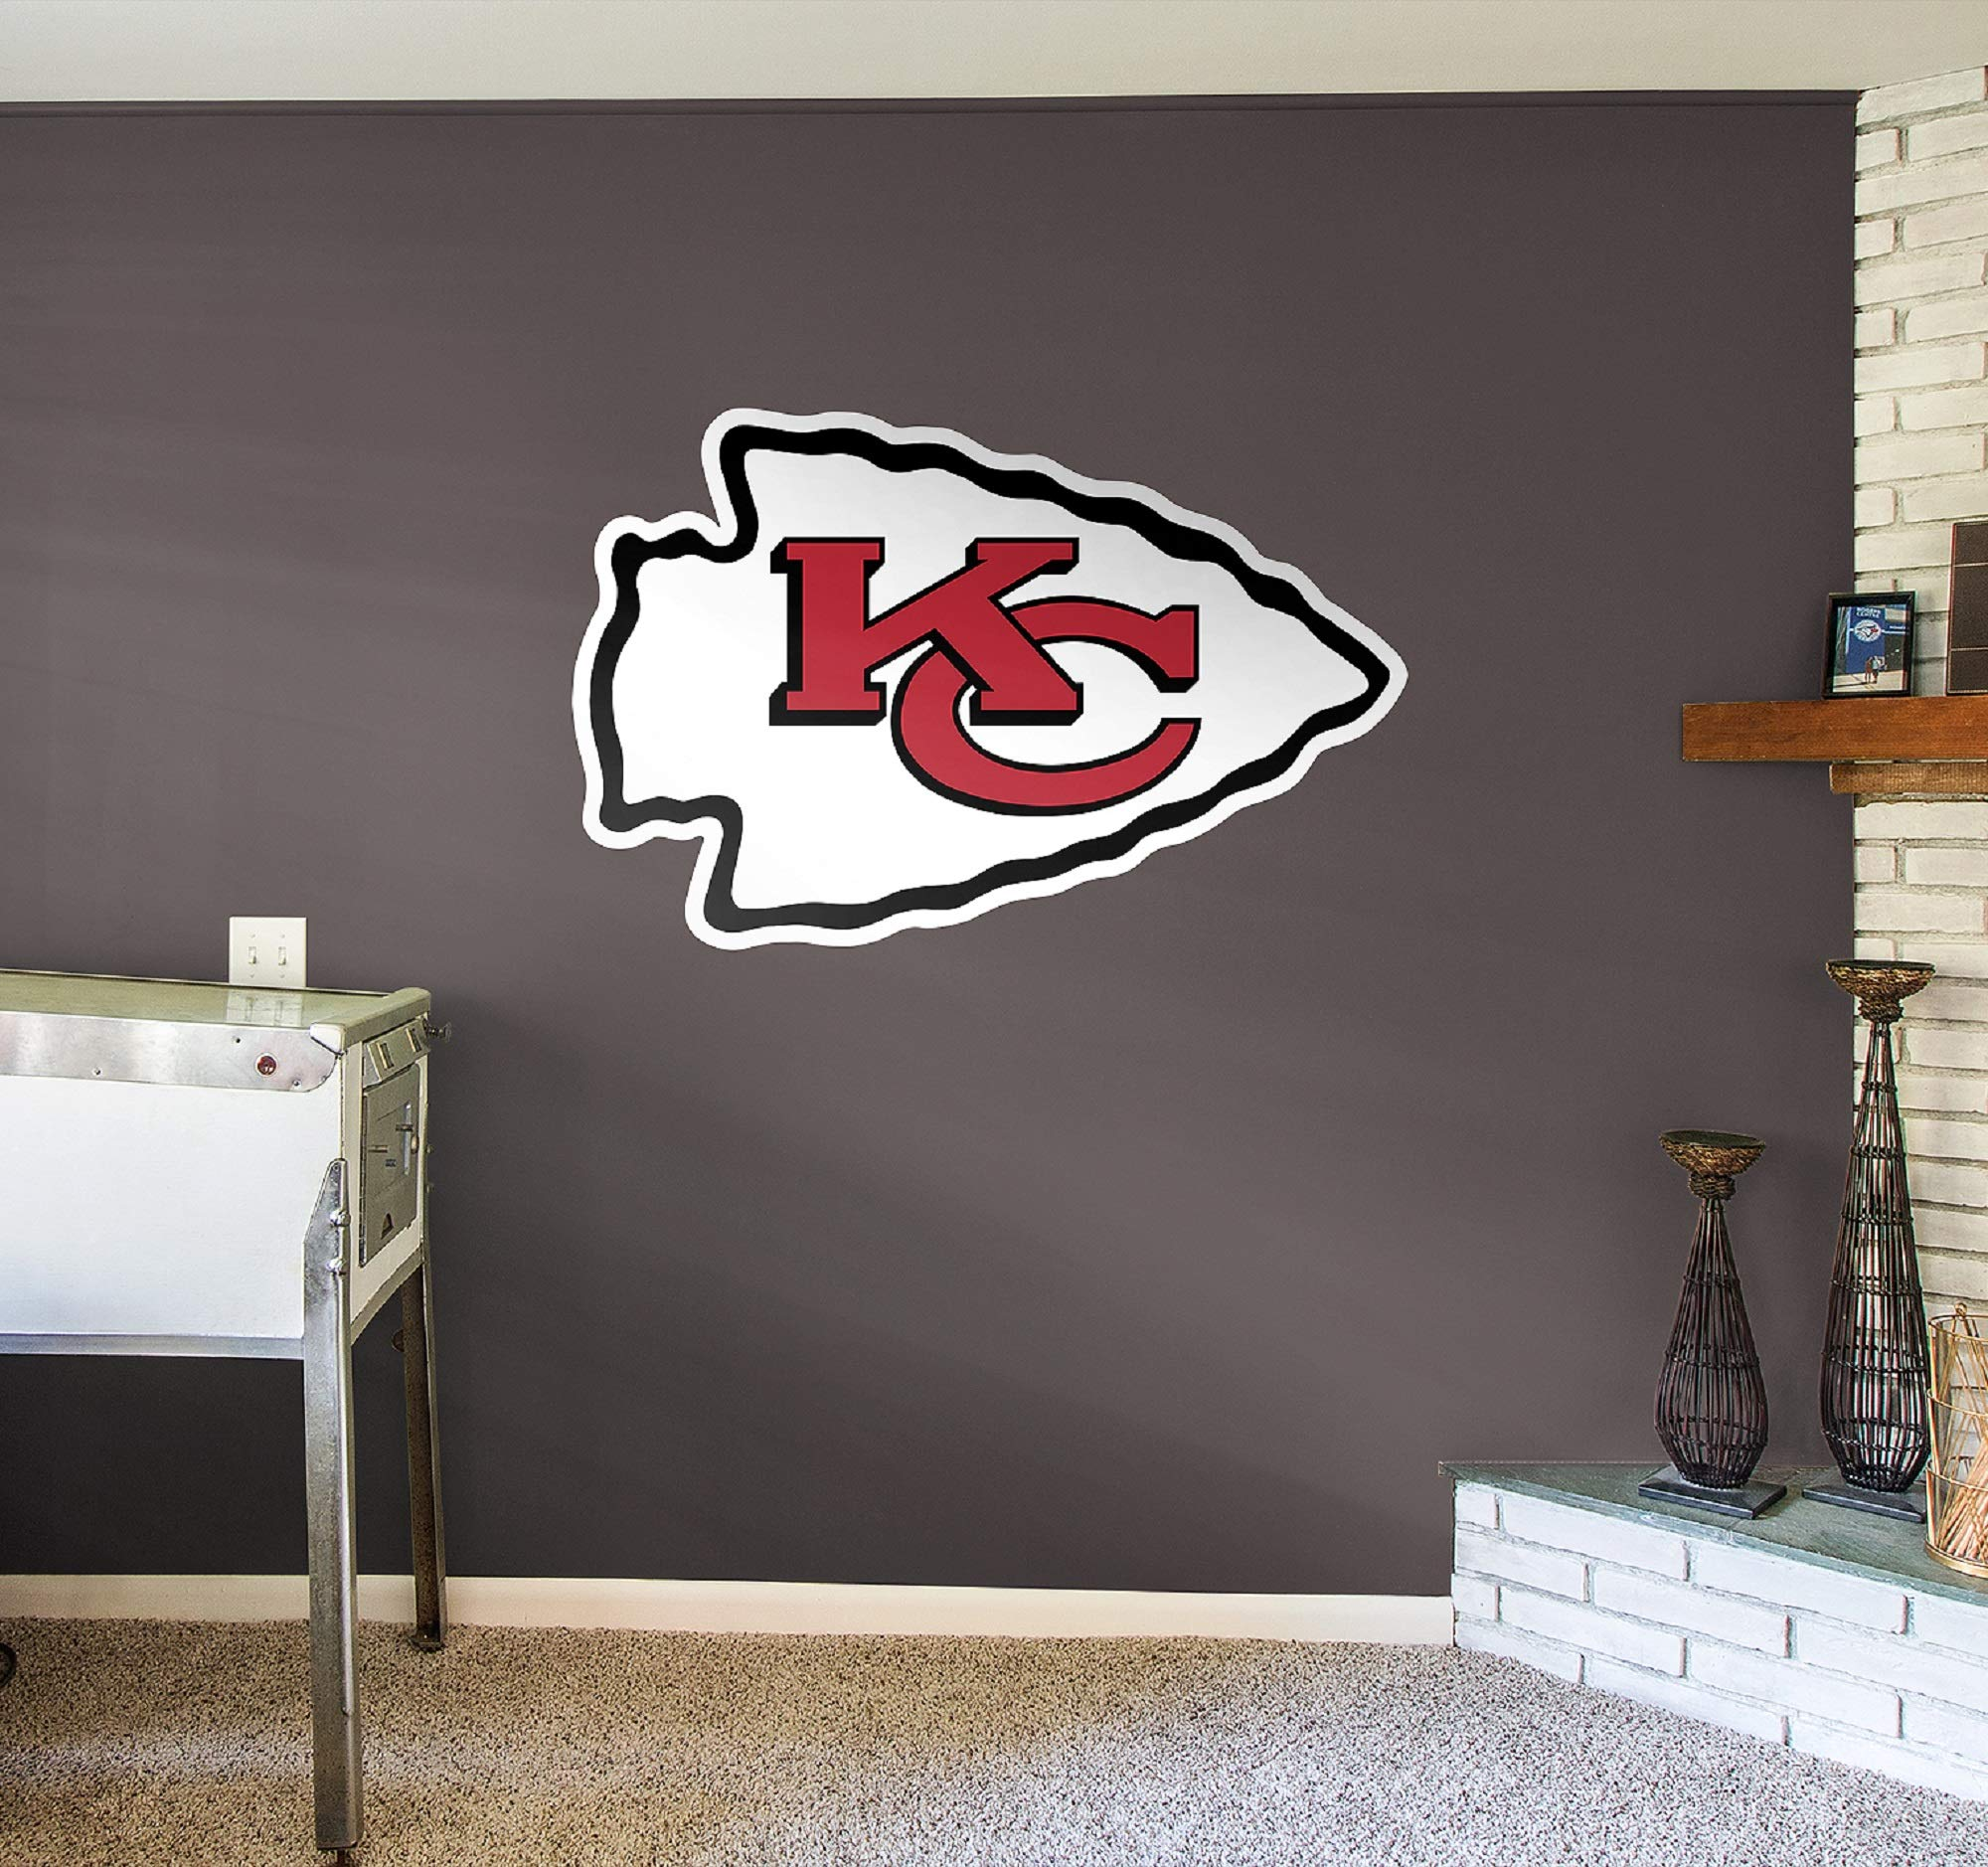 Fathead NFL Kansas City Chiefs Kansas City Chiefs: Logo - Giant Officially Licensed NFL Removable Wall Decal - 14-14018 by FATHEAD